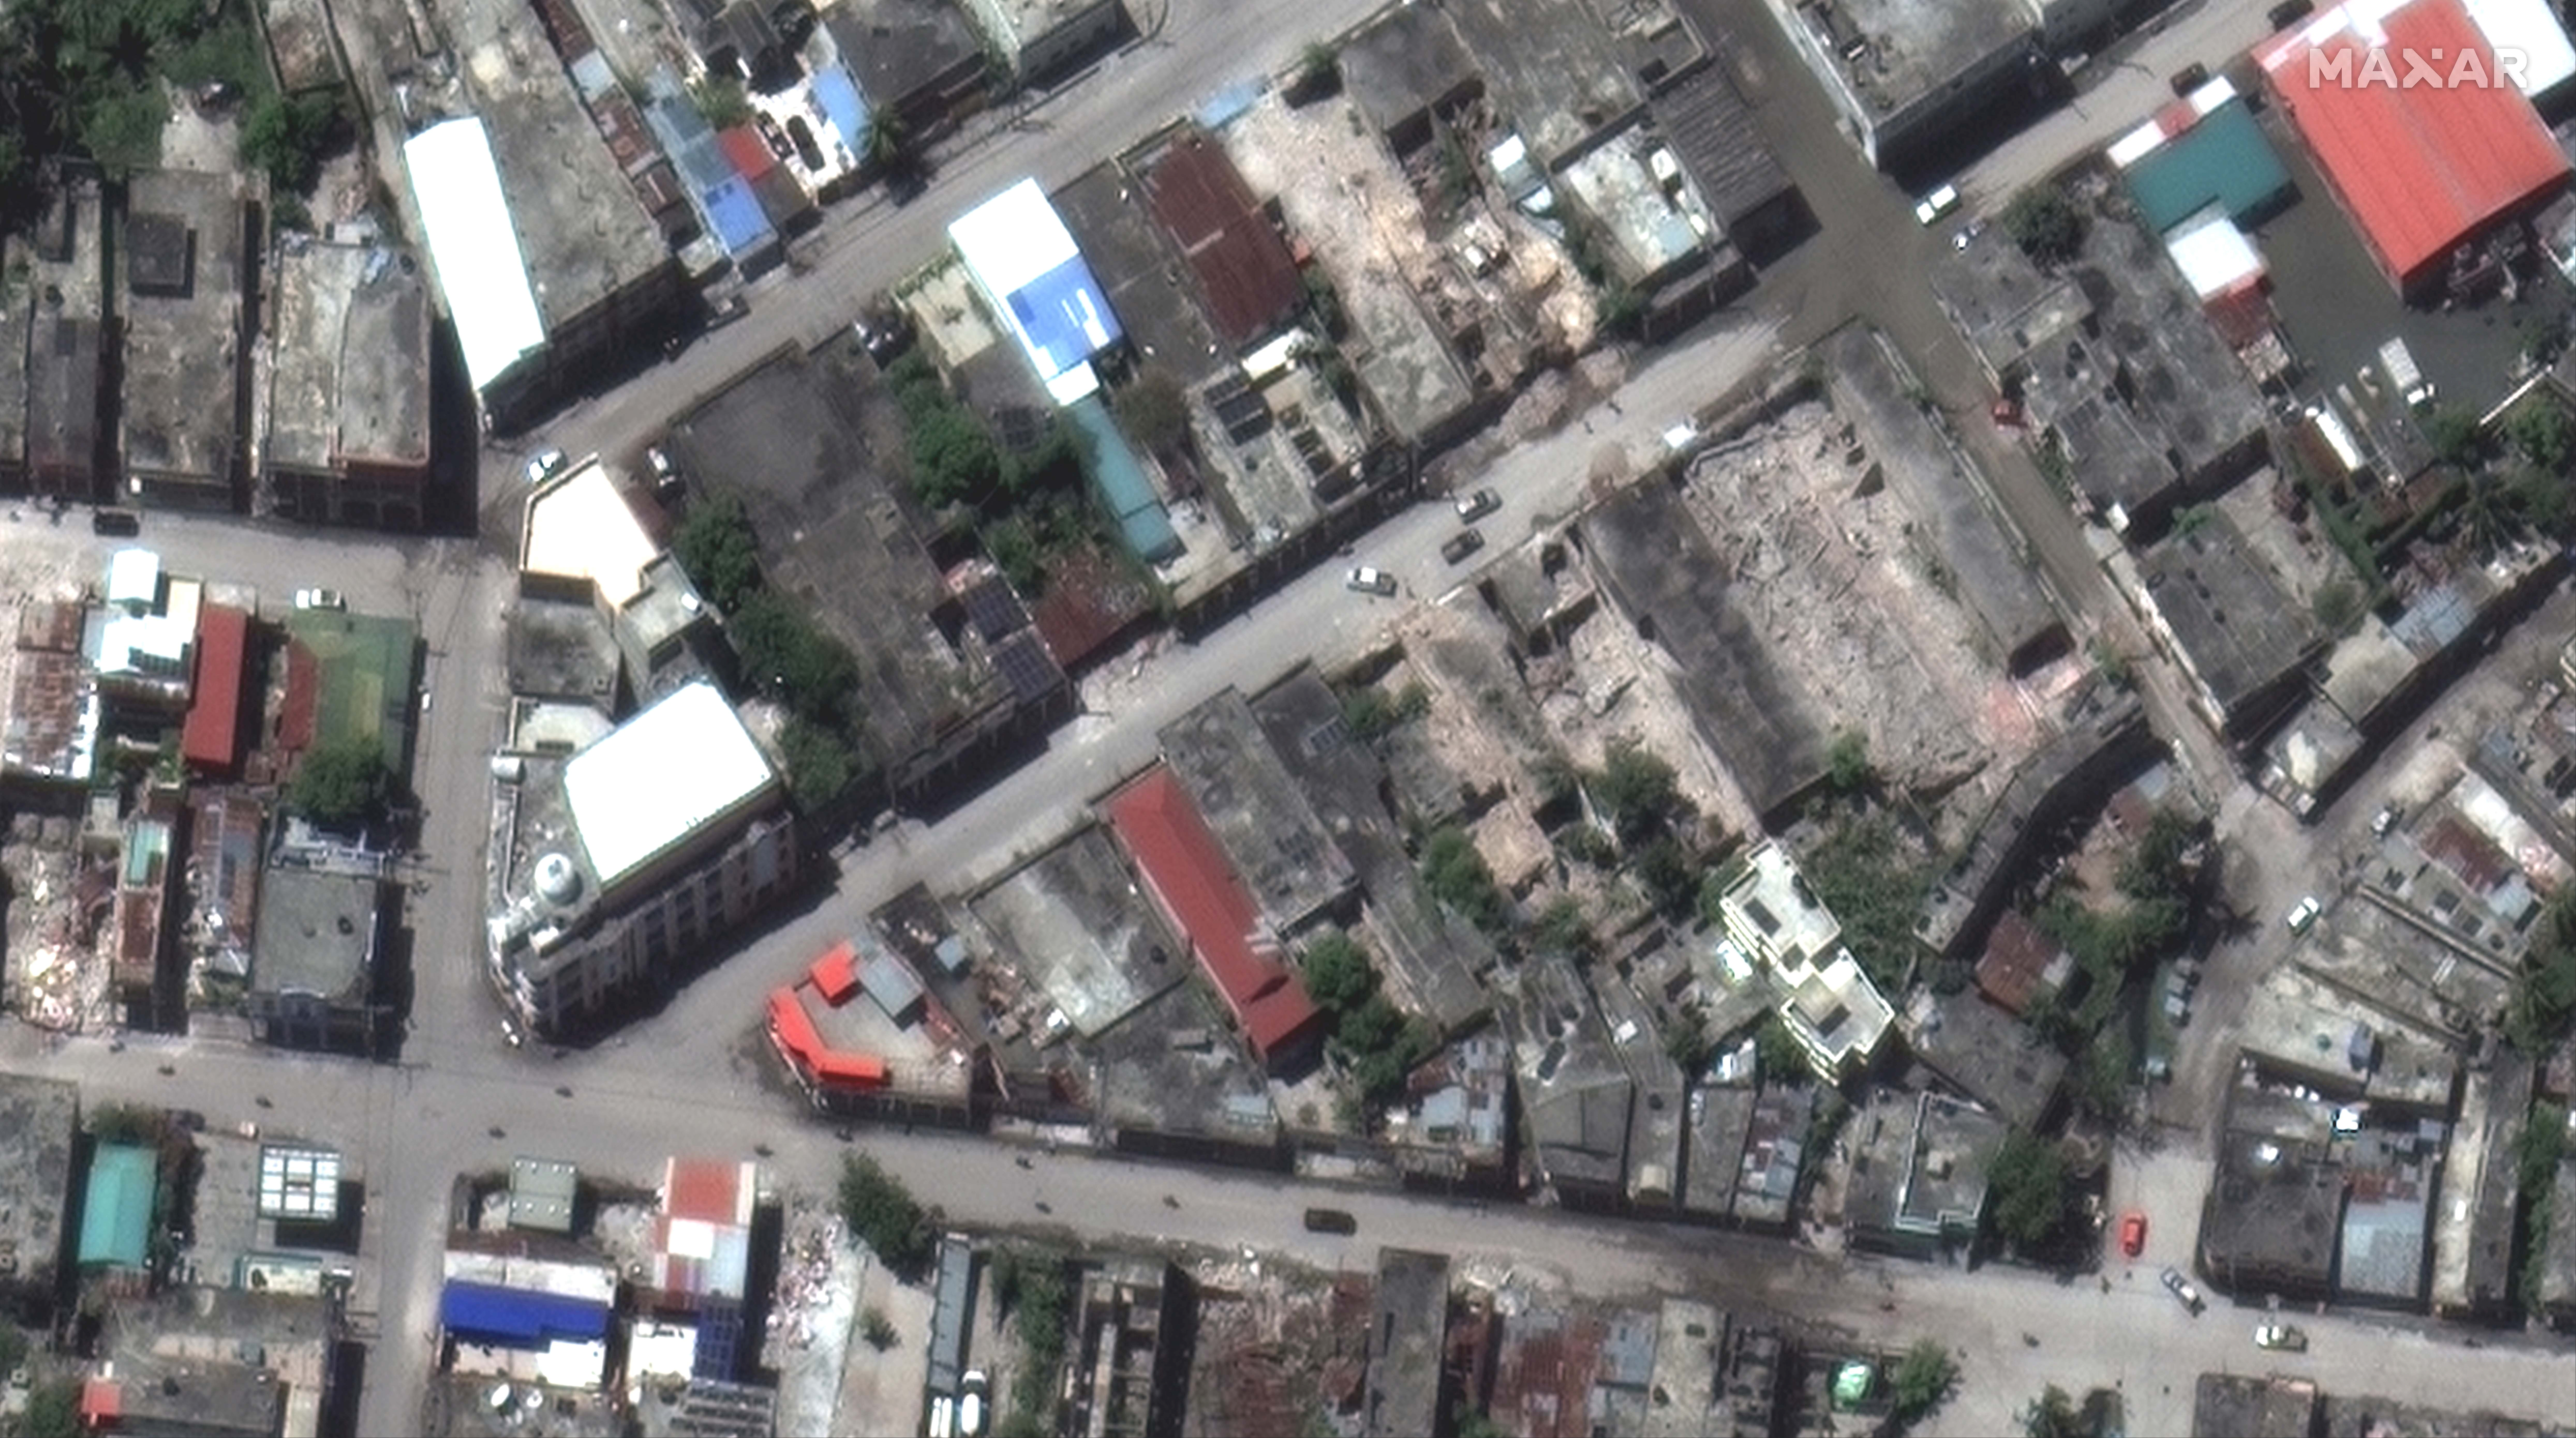 A satellite image shows collapsed buildings in Les Cayes, after a 7.2 magnitude earthquake struck Haiti, August 15, 2021. SATELLITE IMAGE 2021 MAXAR TECHNOLOGIES/Handout via REUTERS